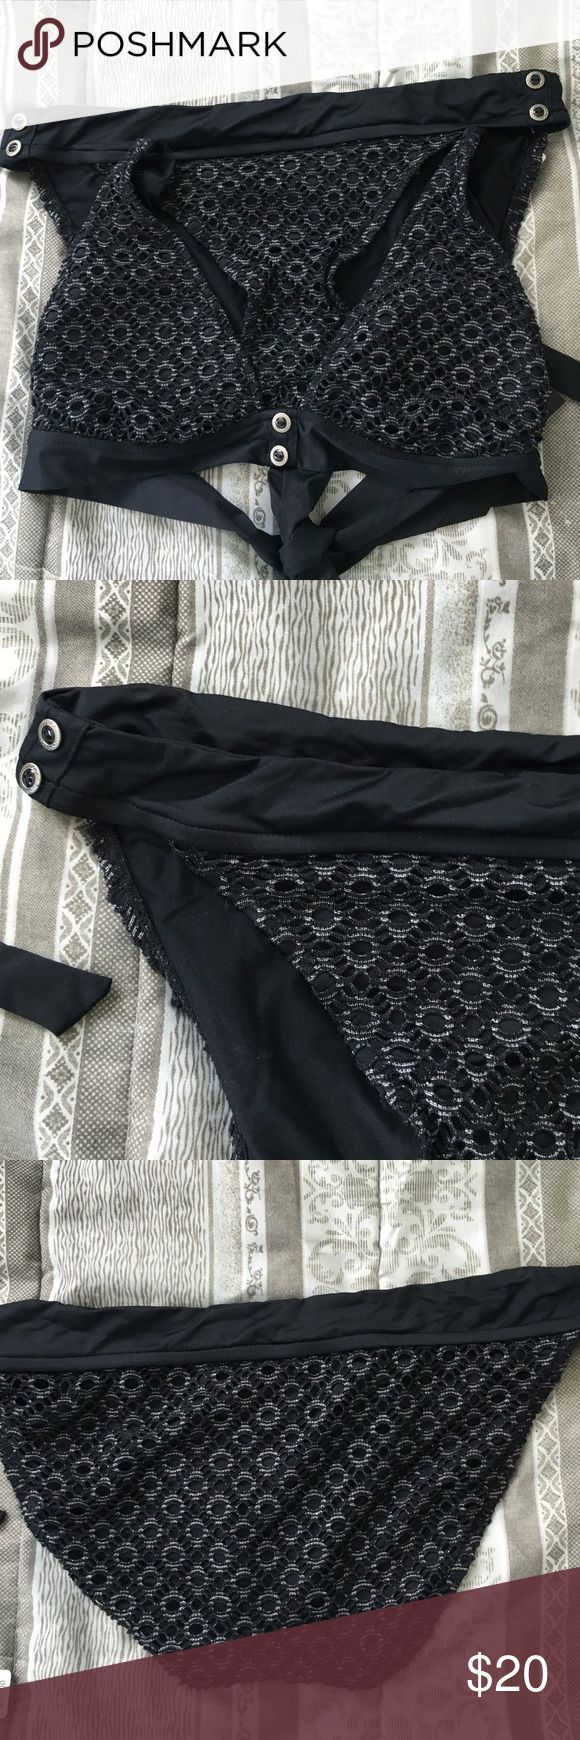 Black with silver bikini set Never used with tag bikini set in large top and bottom  from the brand bison bisou.  Top is a tie strap style and the material is a lace/ crochet type.  Doing a closet clean out. Swim Bikinis